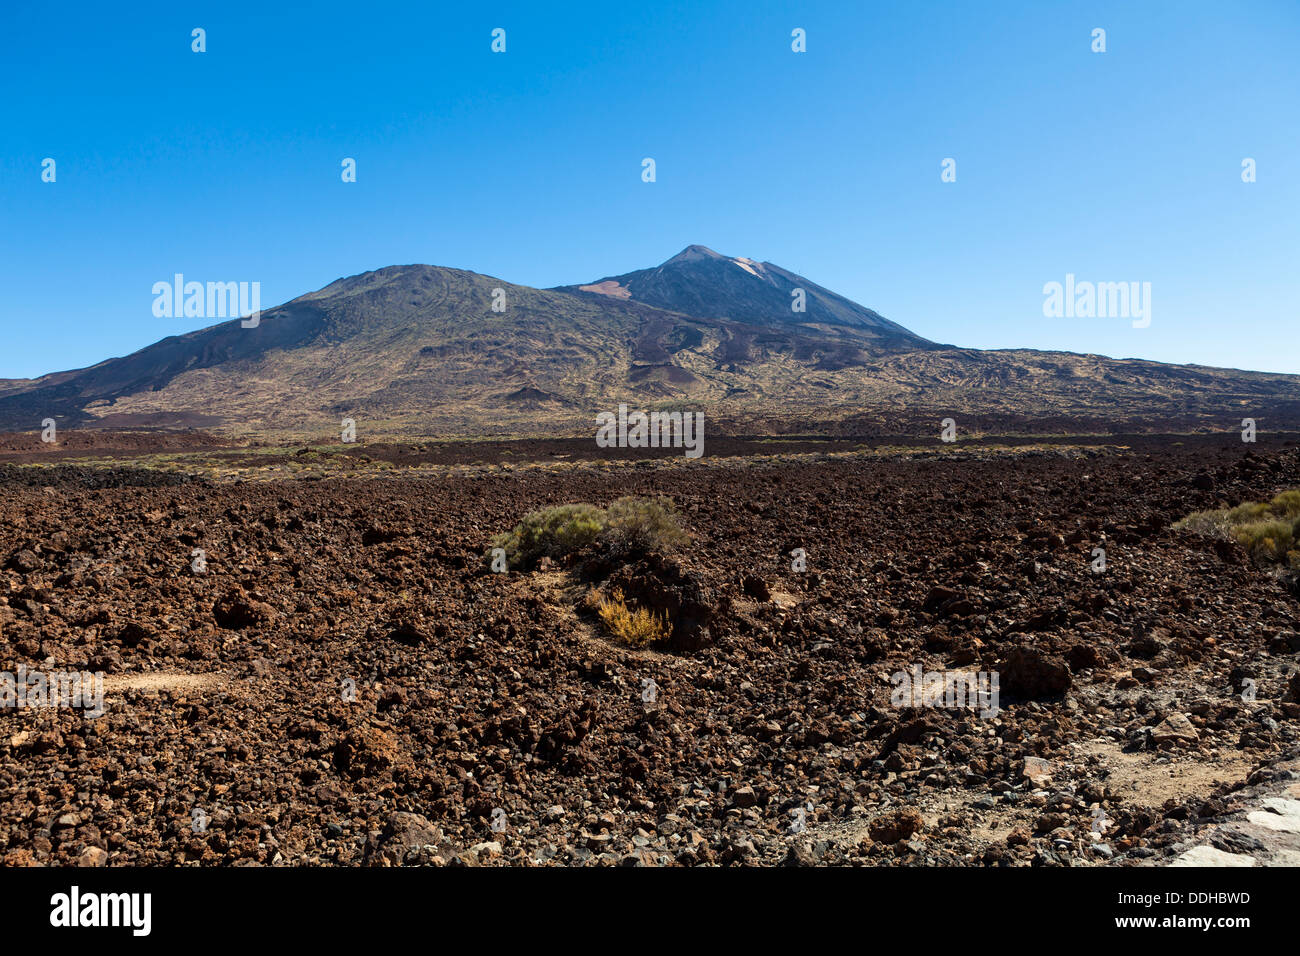 Spain, View of Teide National Park - Stock Image